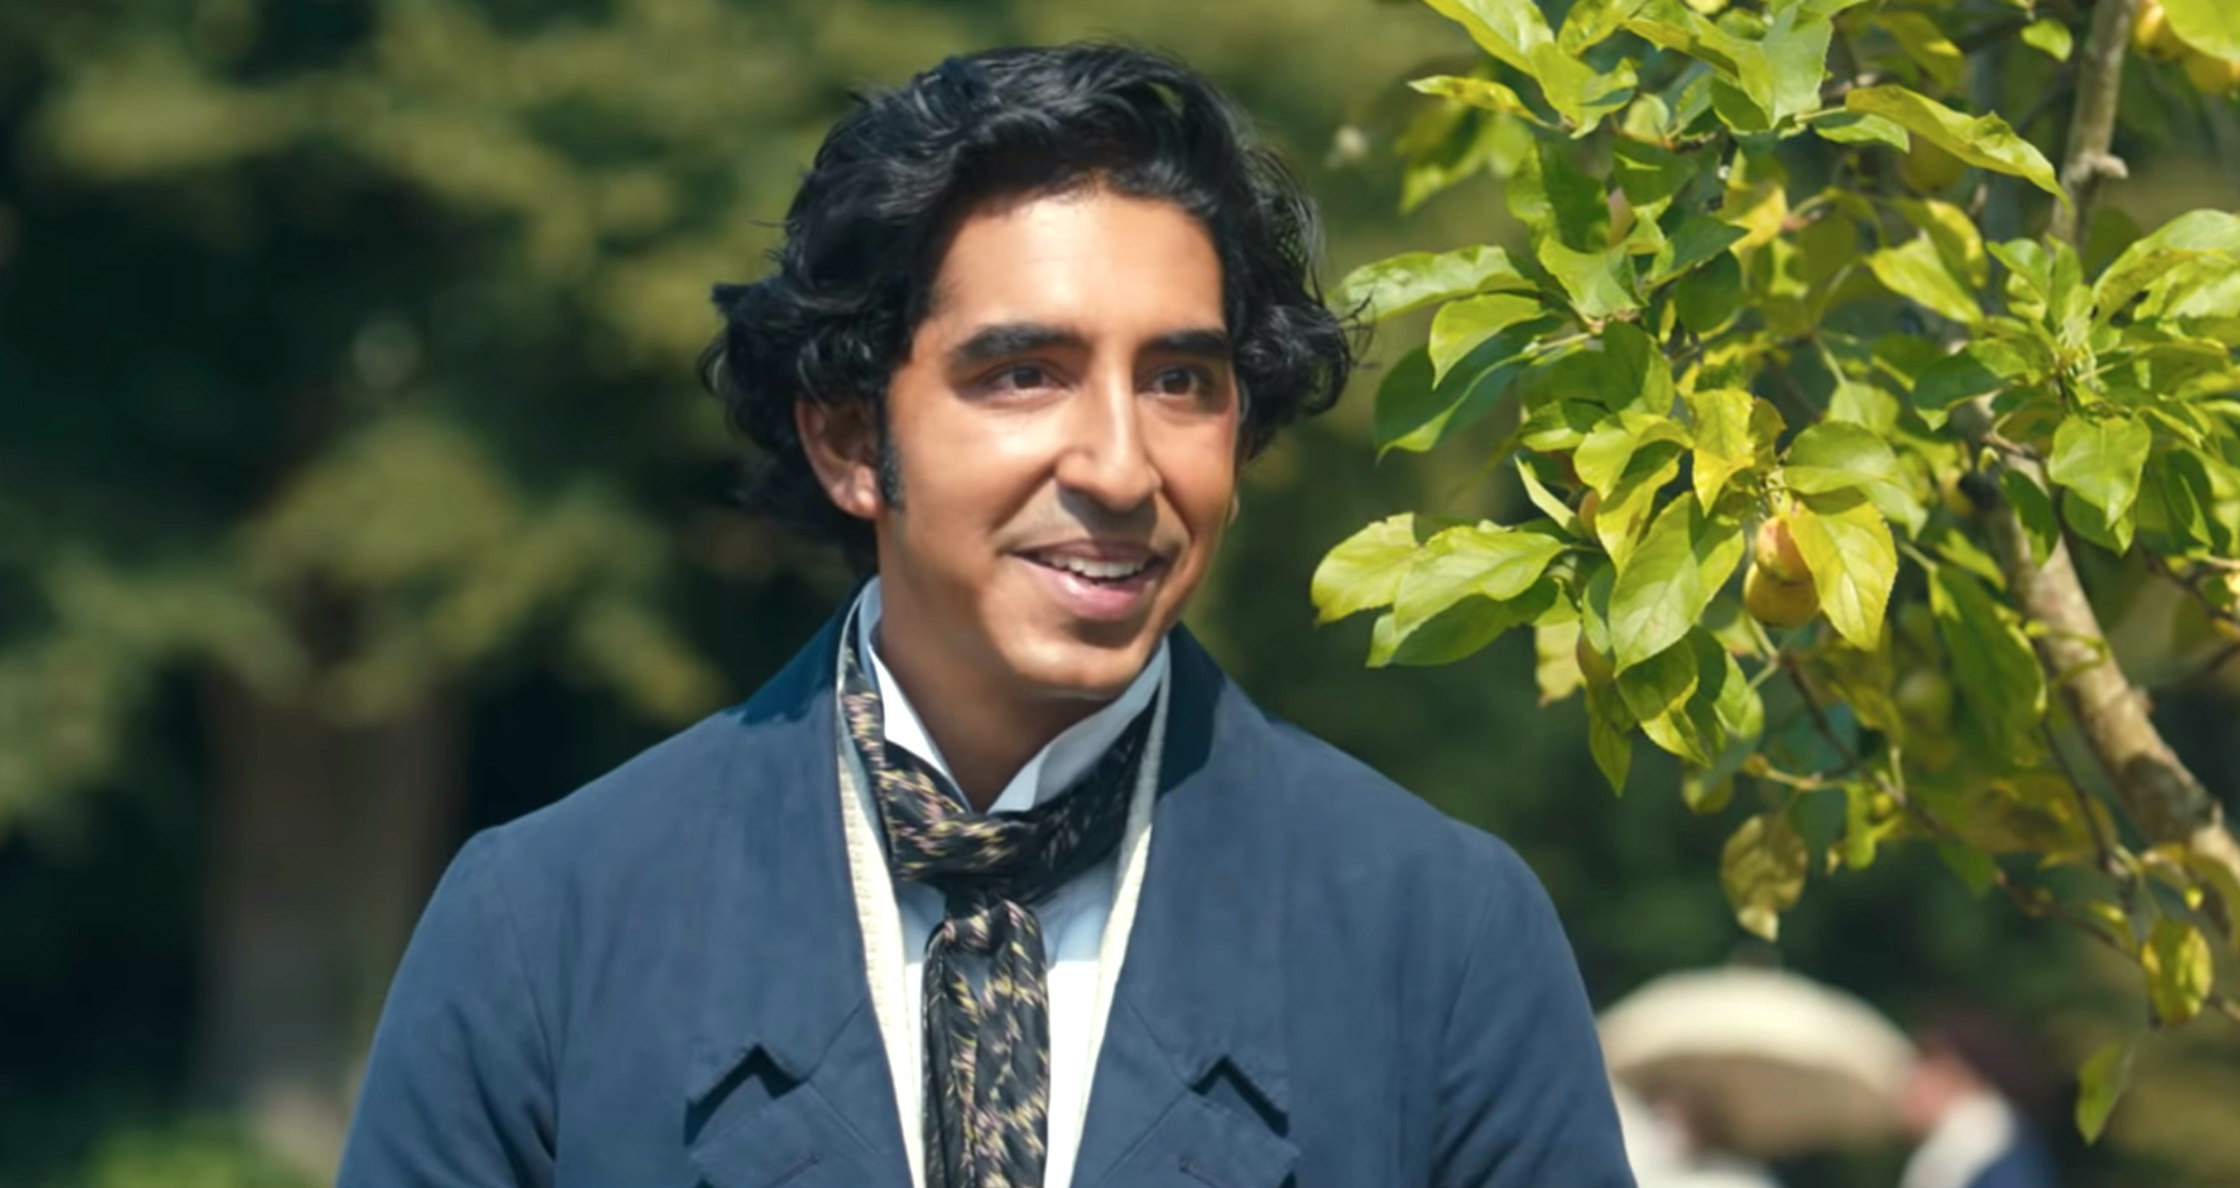 Personal History Of David Copperfield Trailer Adds Veep Spin To Dickens Novel